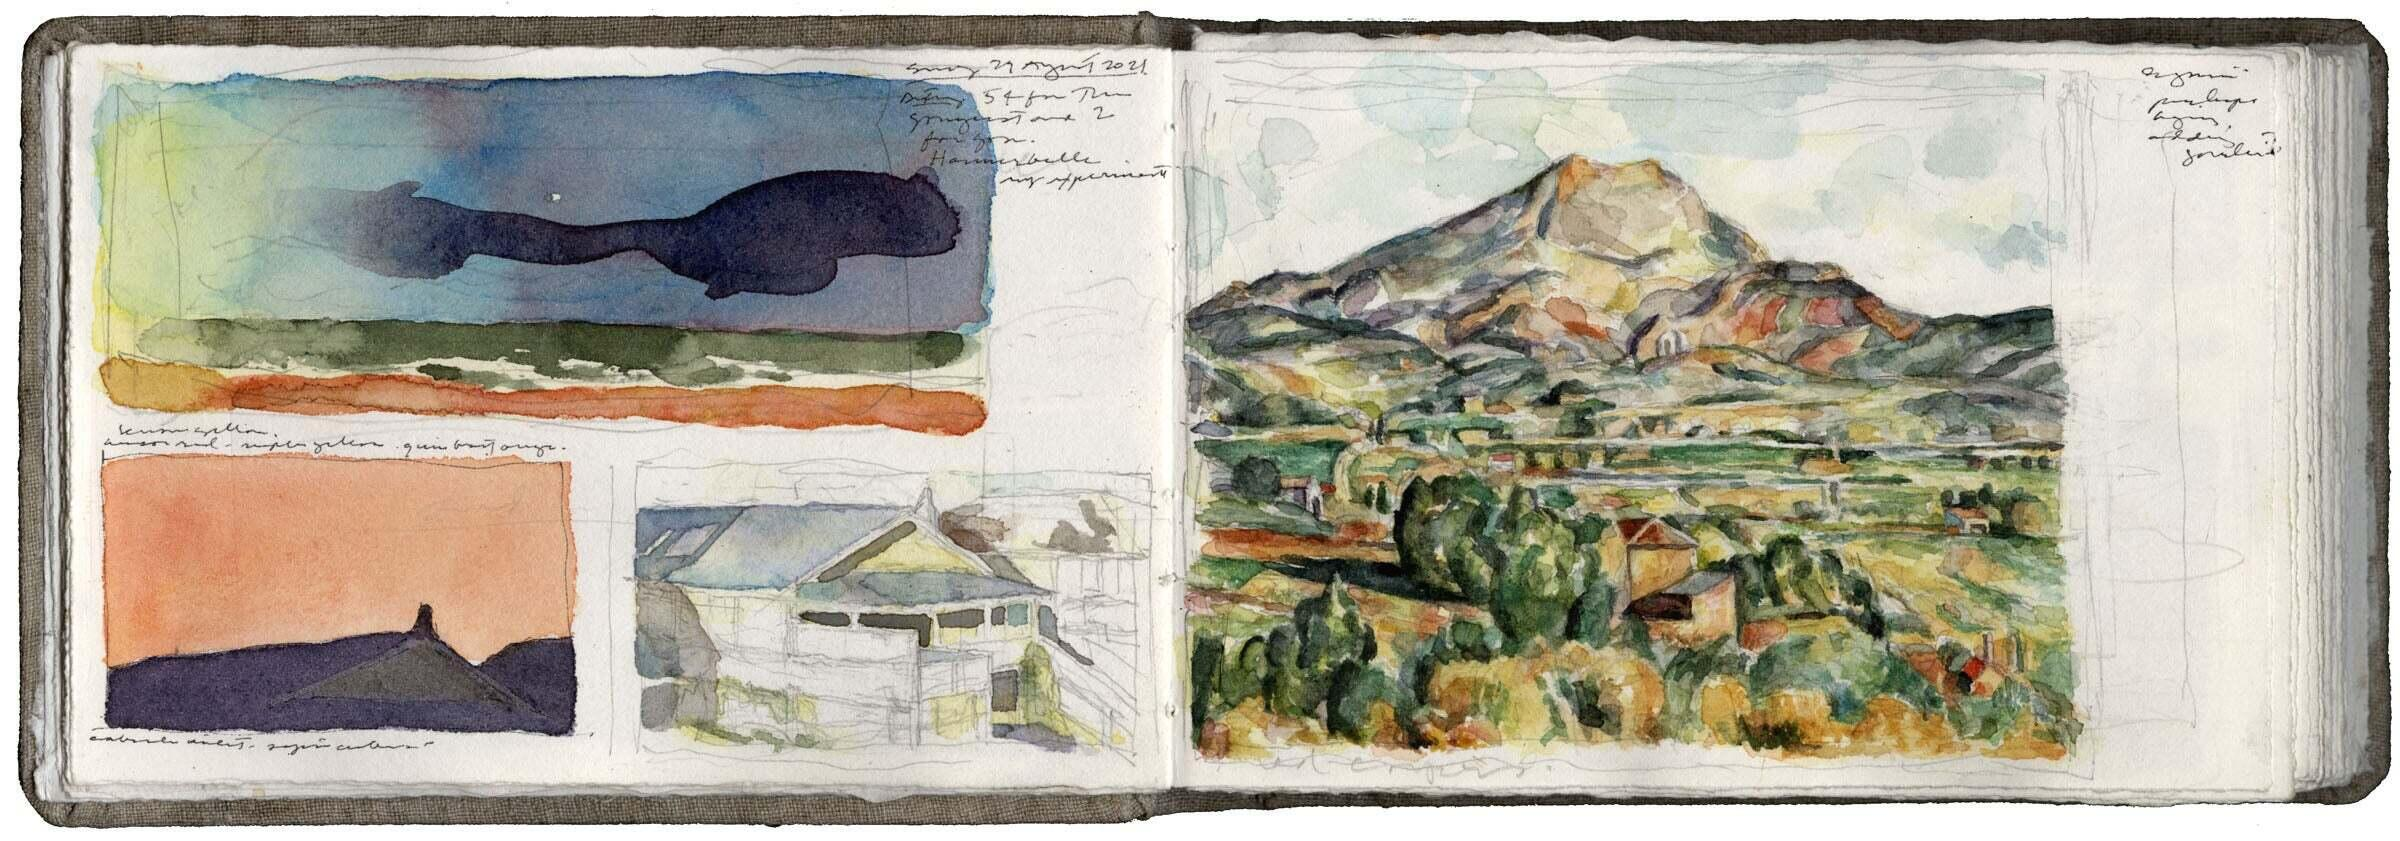 Color Sketches and a Study after Cézanne image